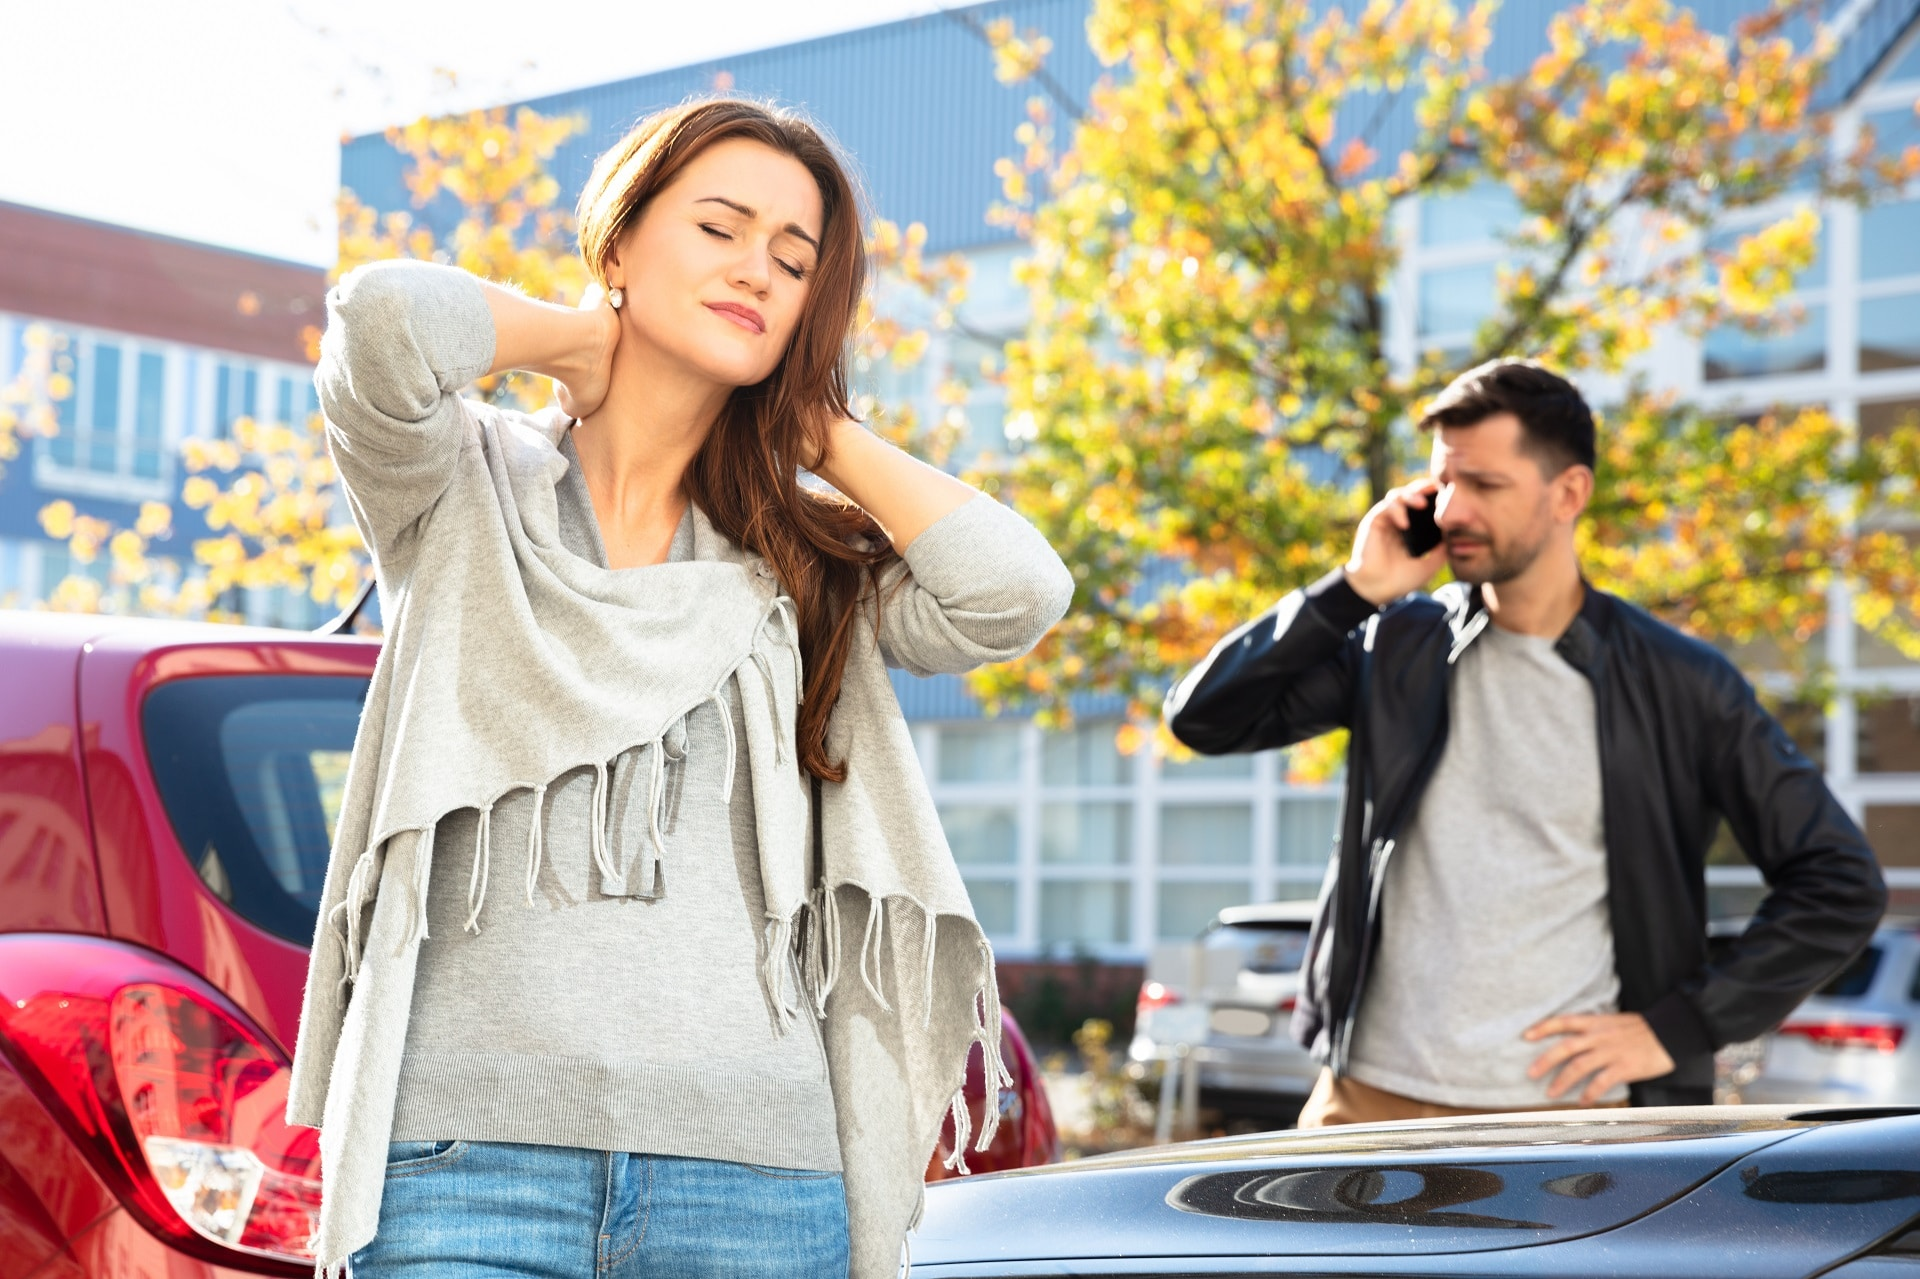 3 Common Auto Accident Injuries in Southern California